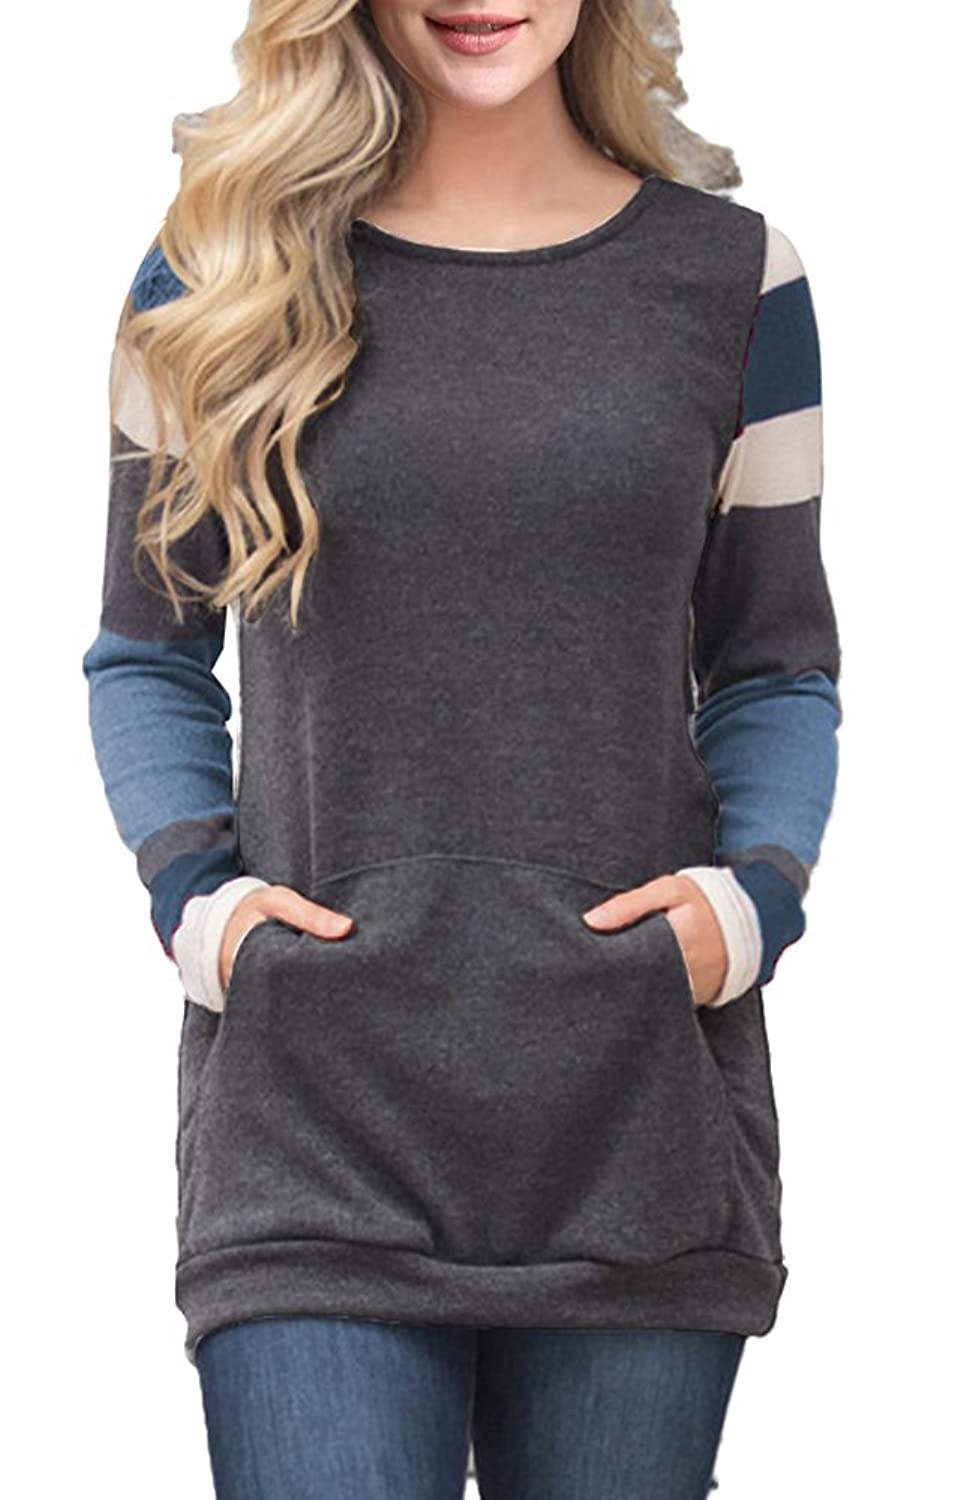 Demetory Women Cotton Knitted Color Block Long Sleeve Striped Tunic Sweatshirt Tops With Kangaroo Pocket